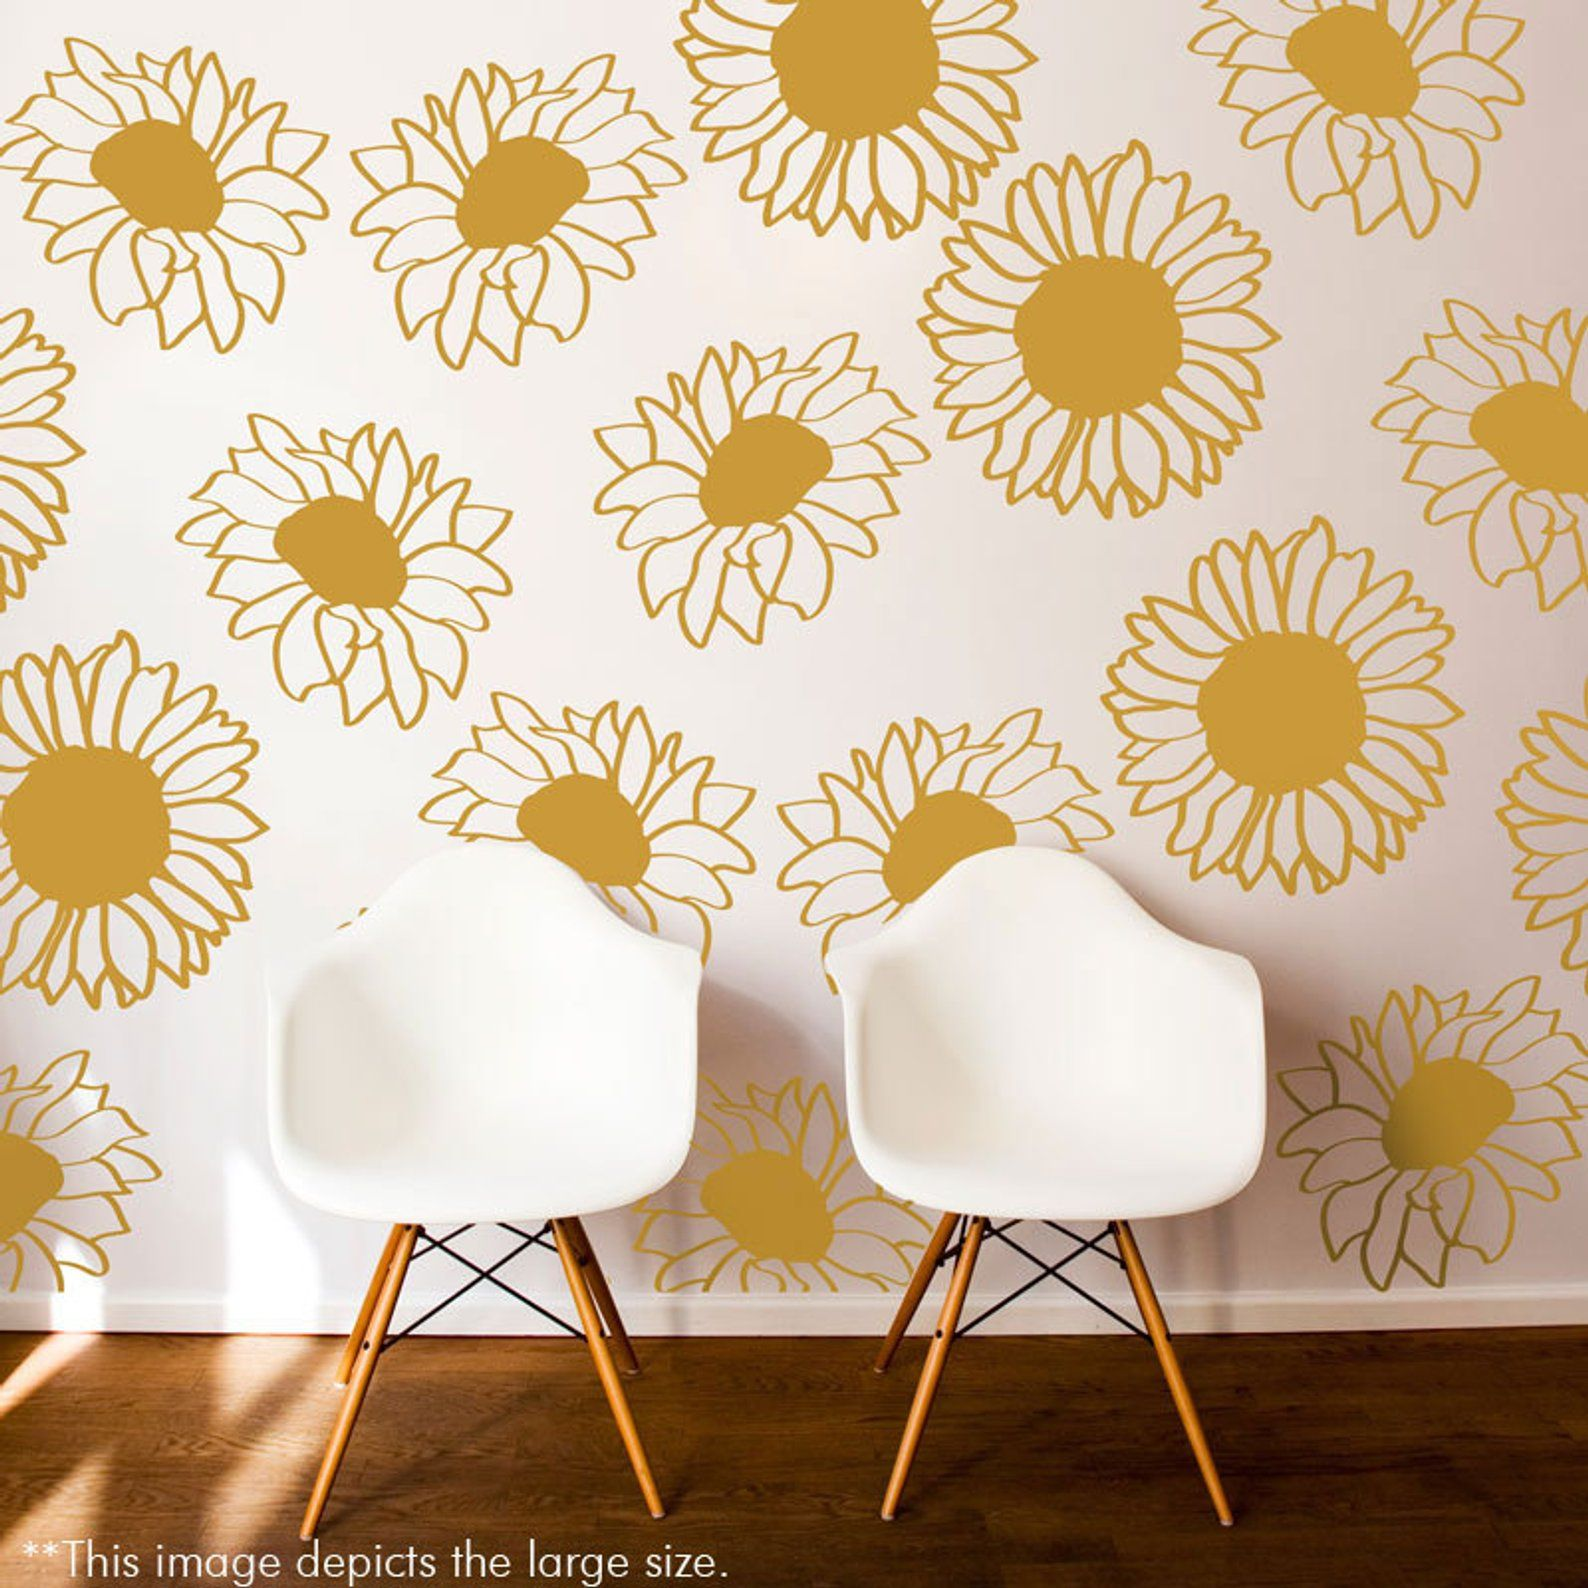 Large Sunflower Wall Pattern Decal Wall Decal Custom Vinyl Art